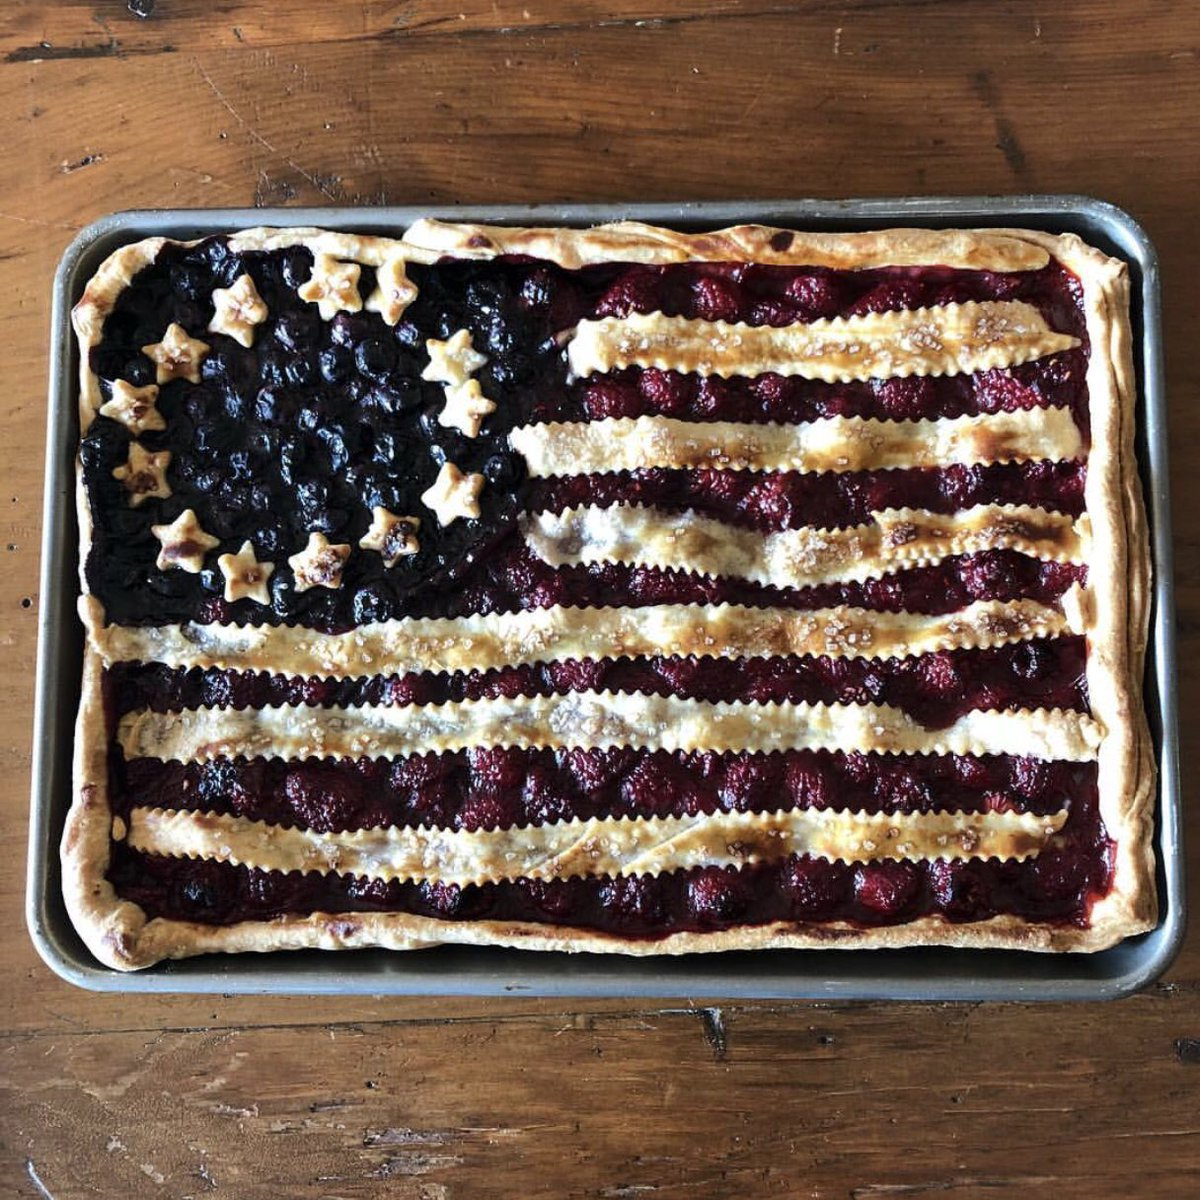 Have a safe, happy, delicious 4th! https://t.co/QqWSEBdX0u